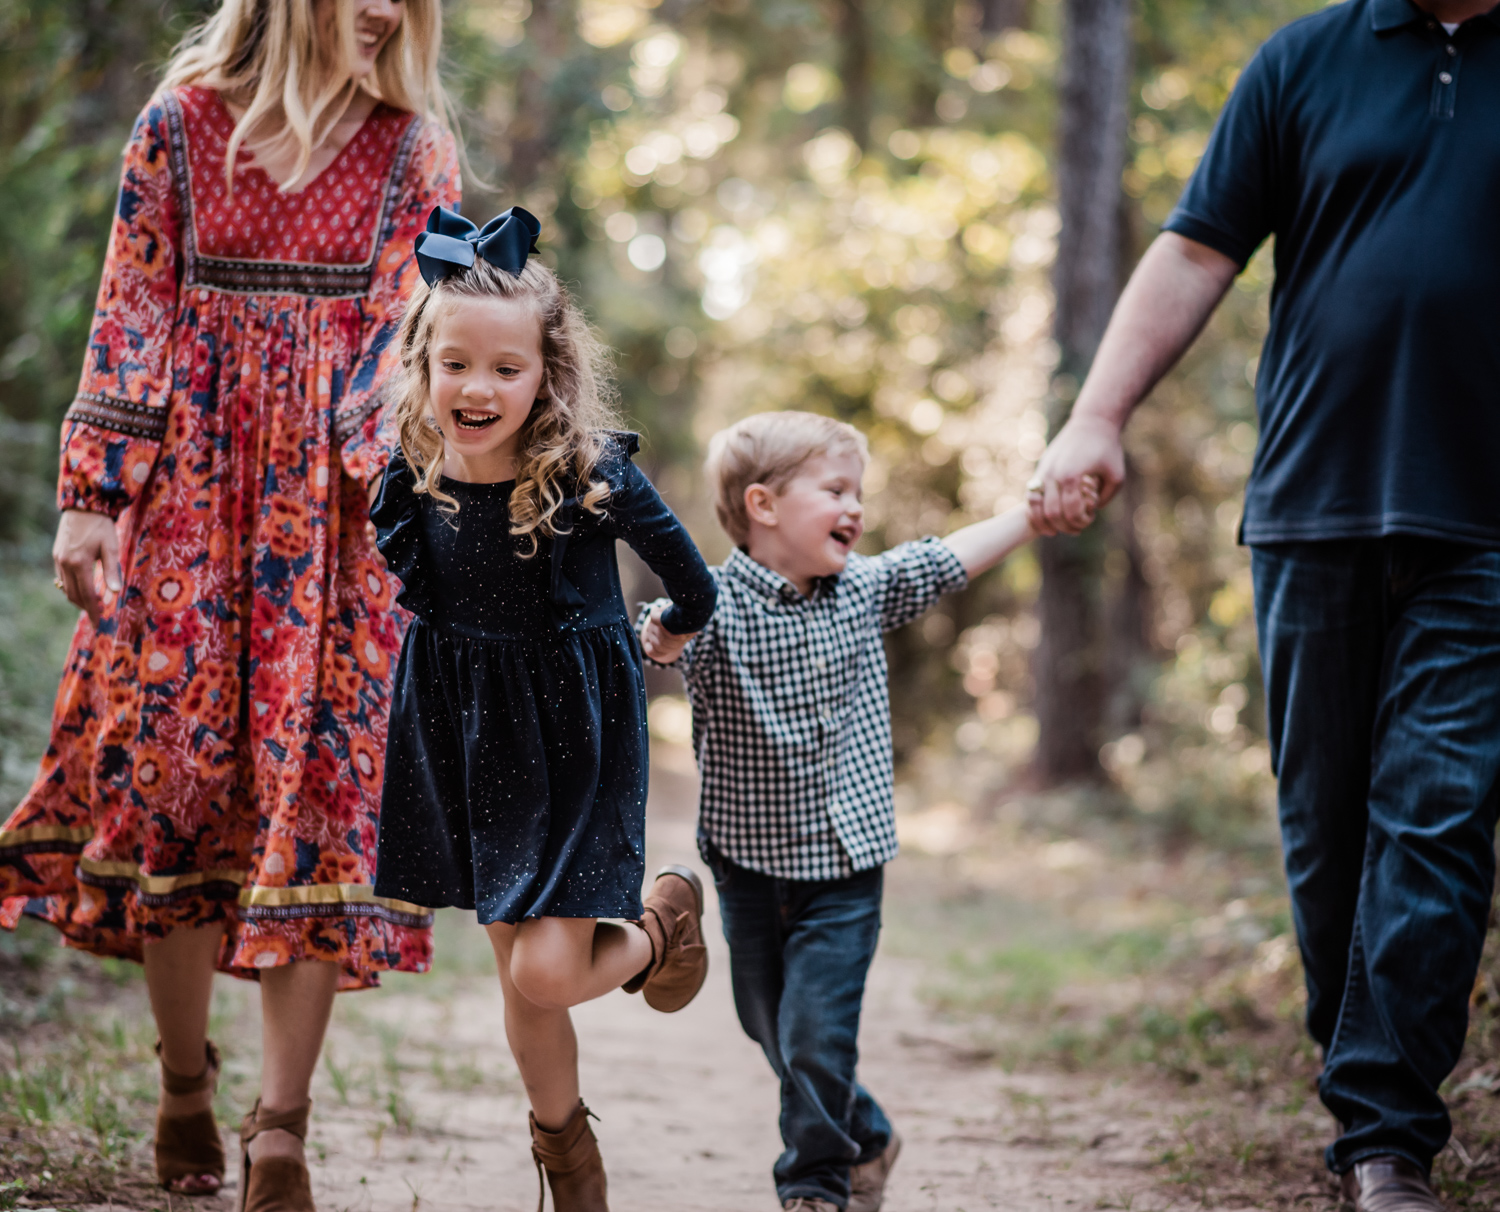 Sugar Land Texas_Family Photographer_Cullinan Park-3.jpg